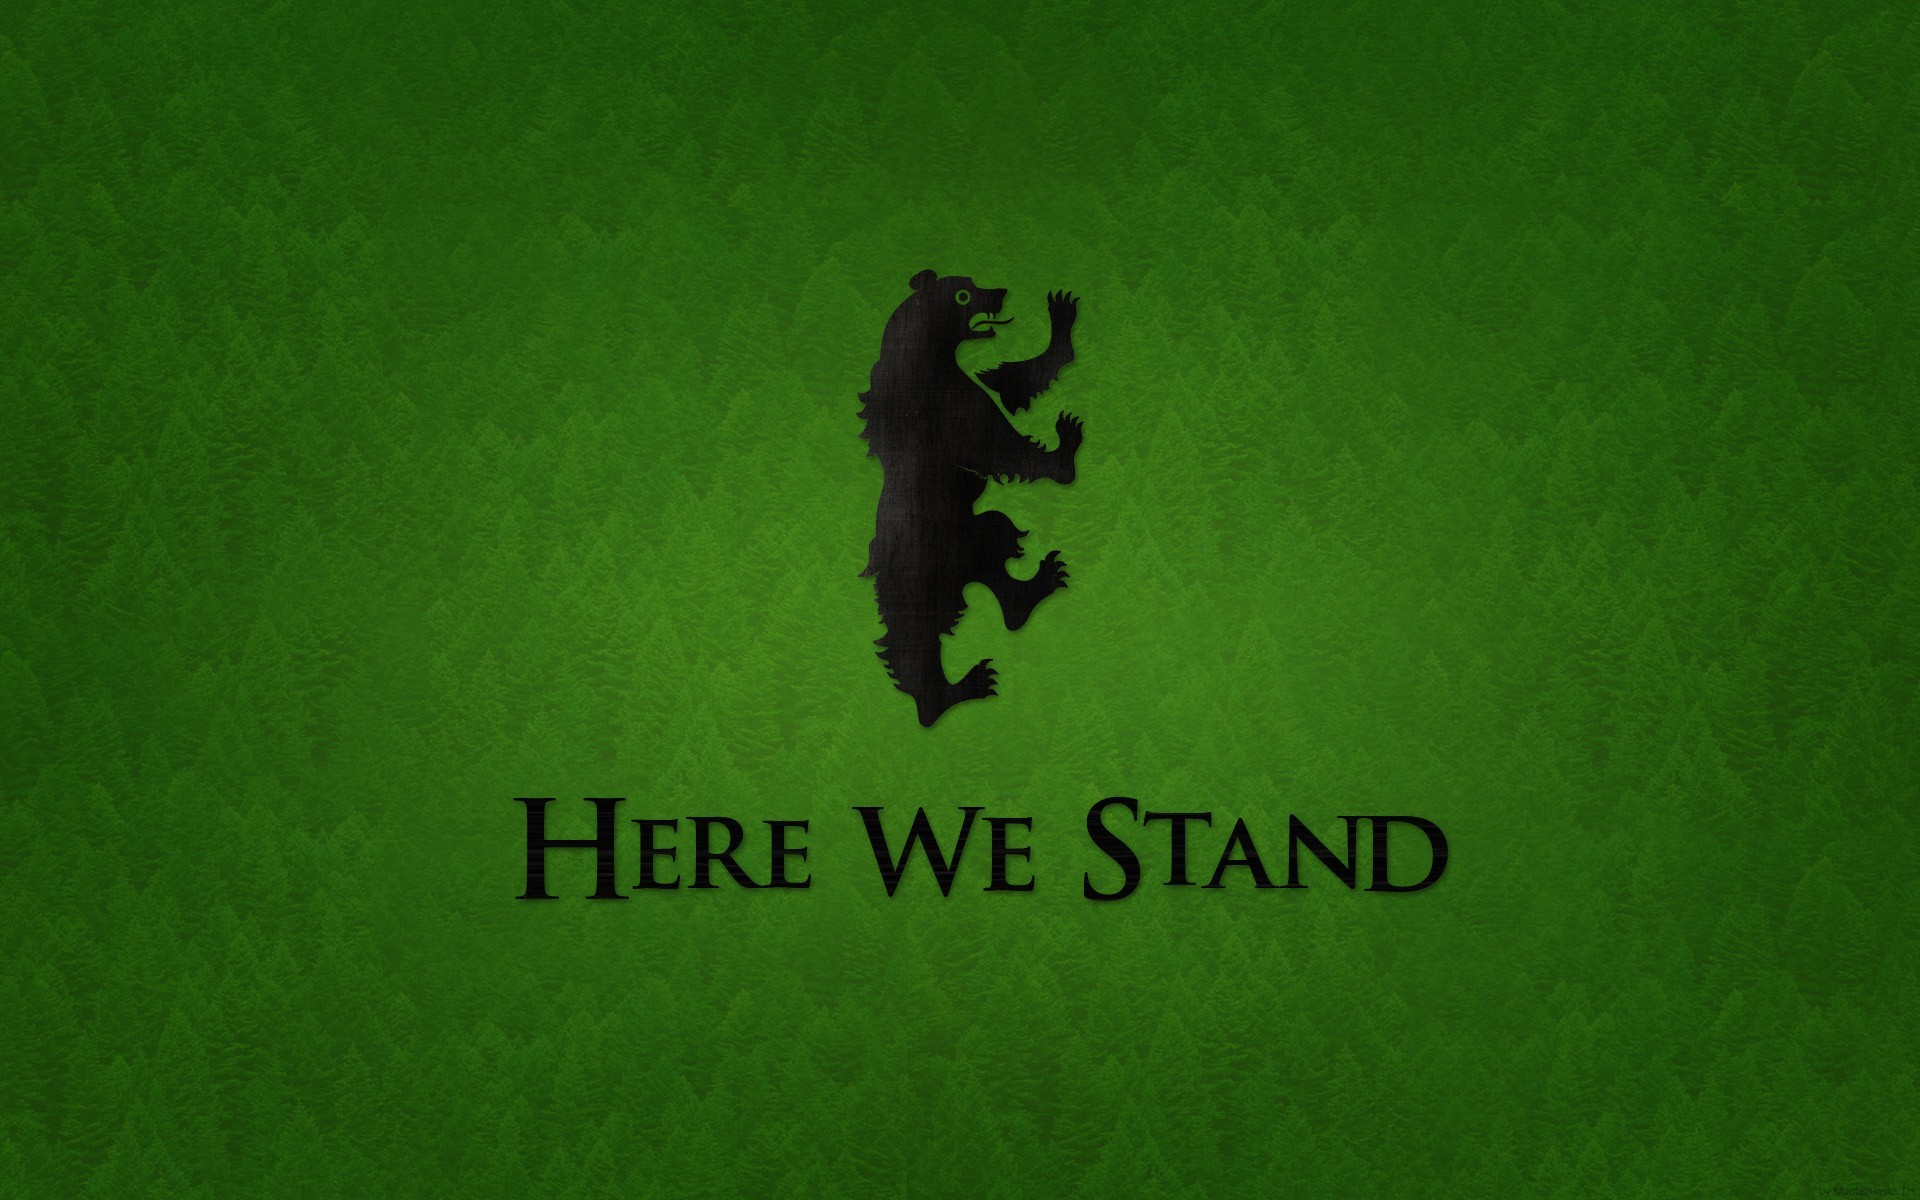 bears Game of Thrones A Song Of Ice And Fire TV series House Mormont /  Wallpaper